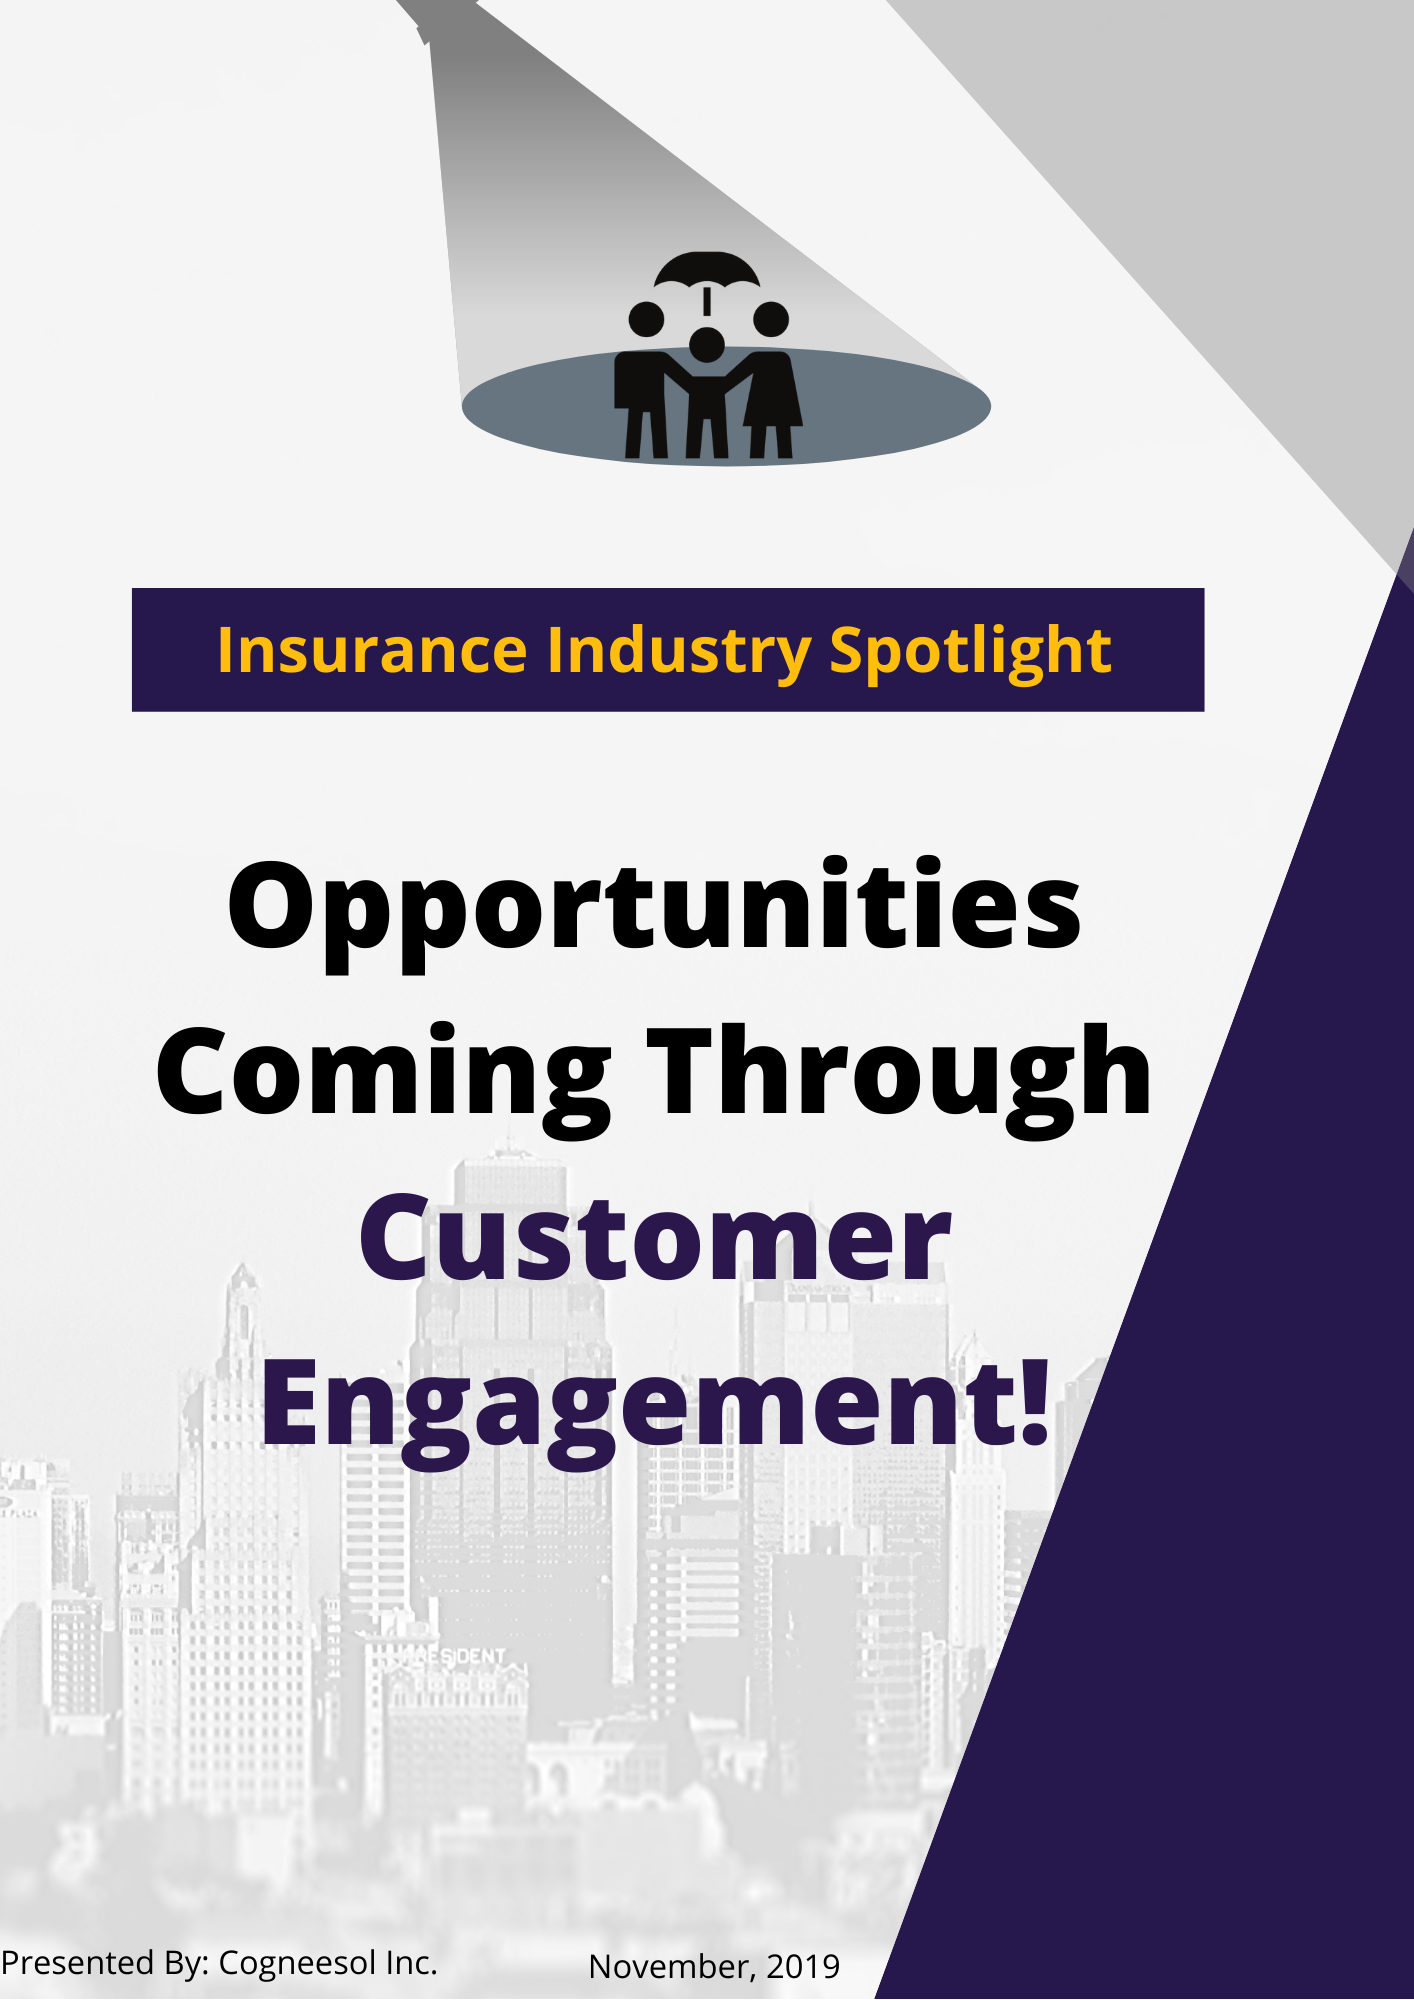 Insurance Industry Opportunities Coming Through Customer